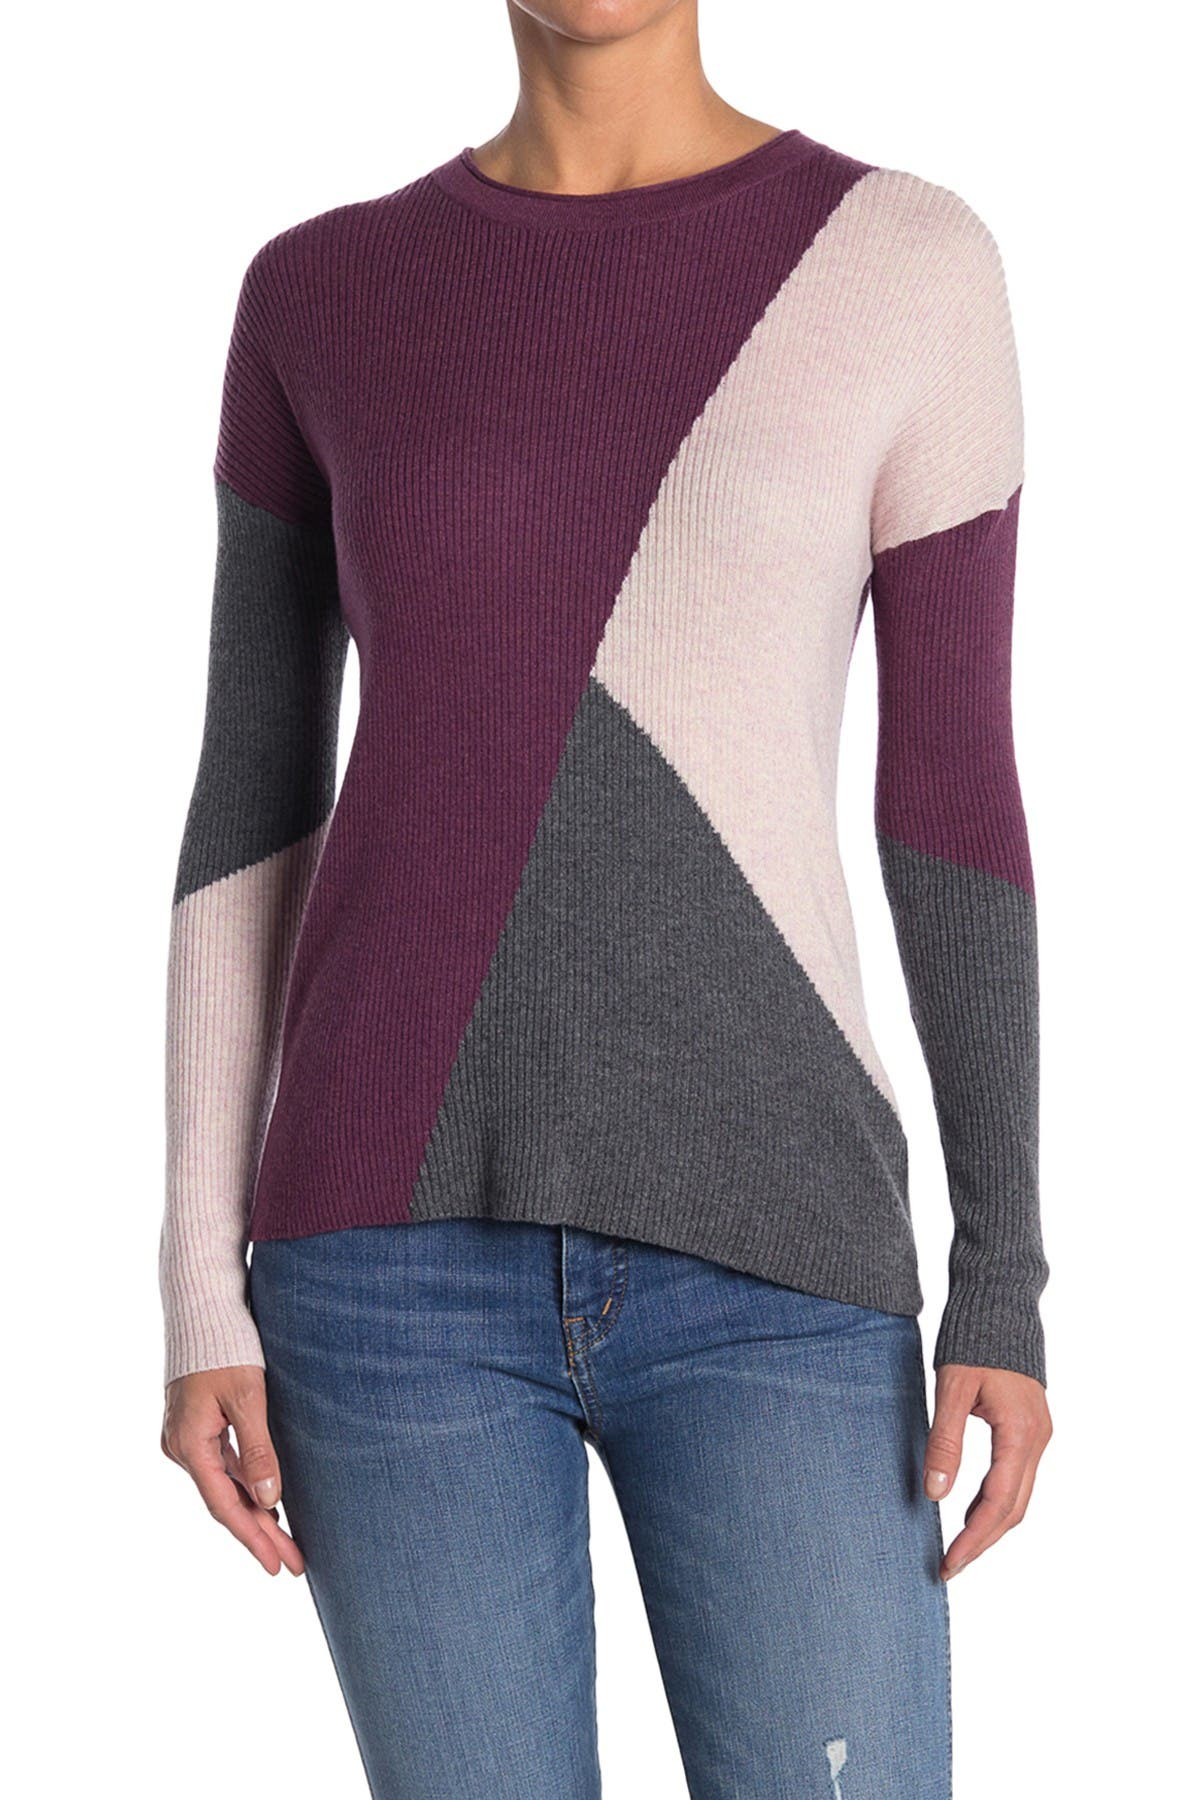 Image of SmartWool Colorblock Ribbed Crew Neck Sweater